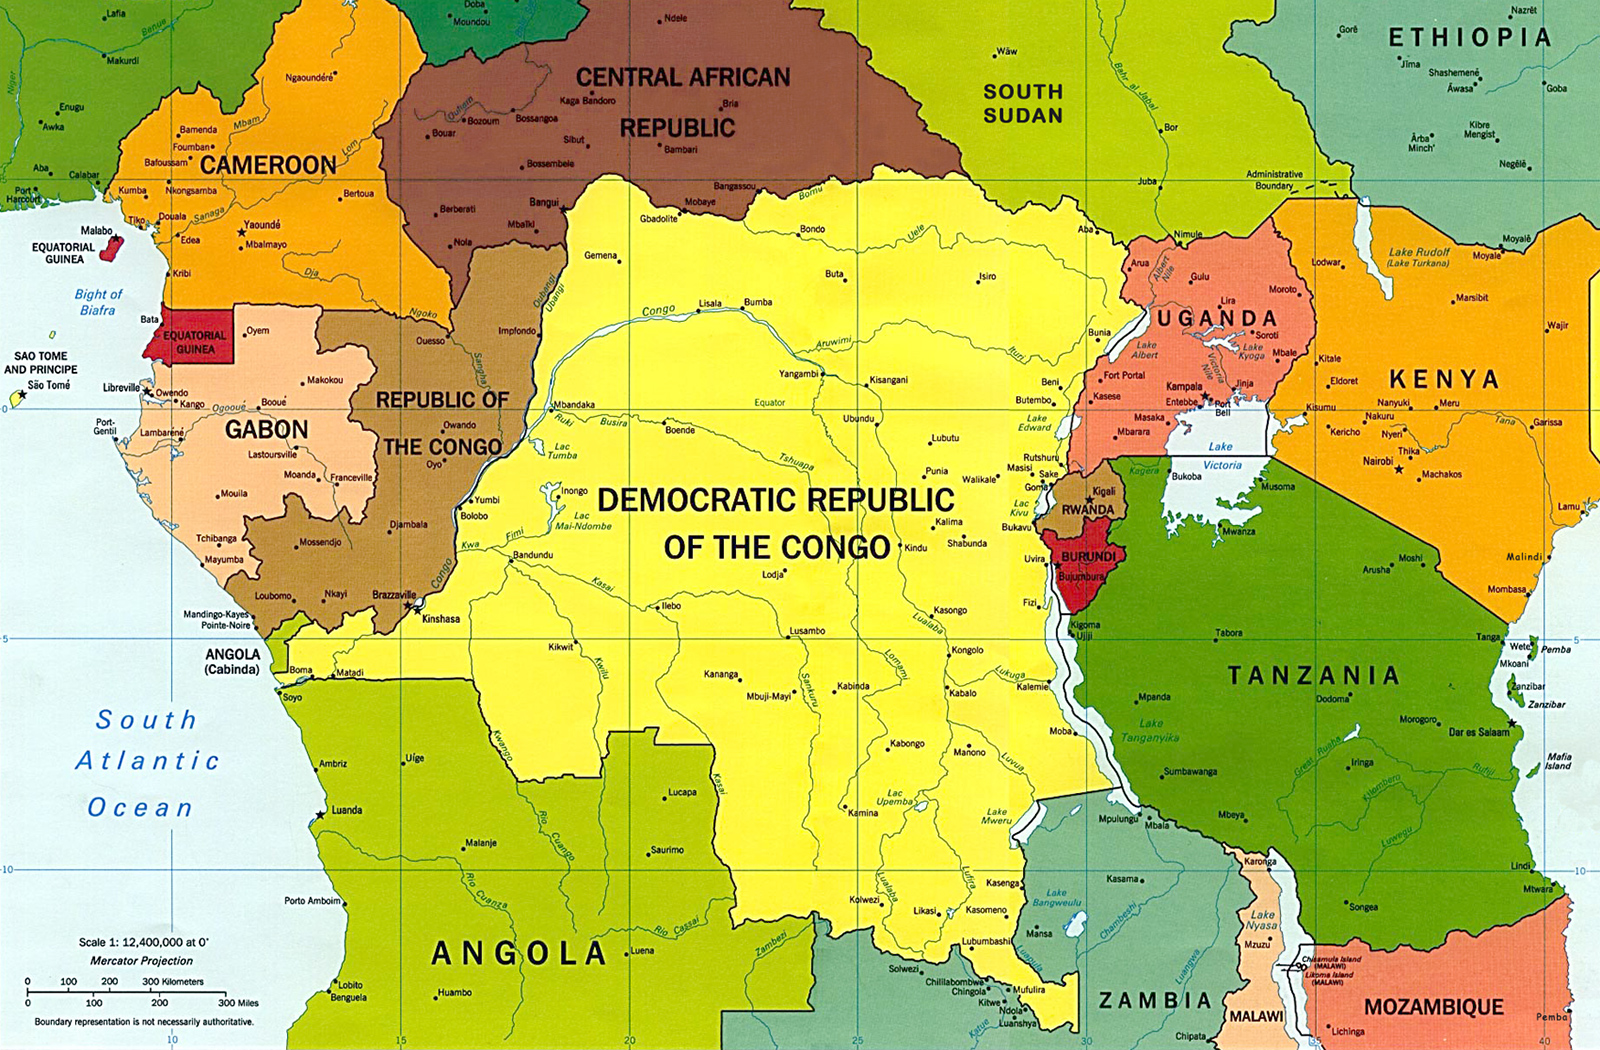 Map of the Central Africa Travel Guide